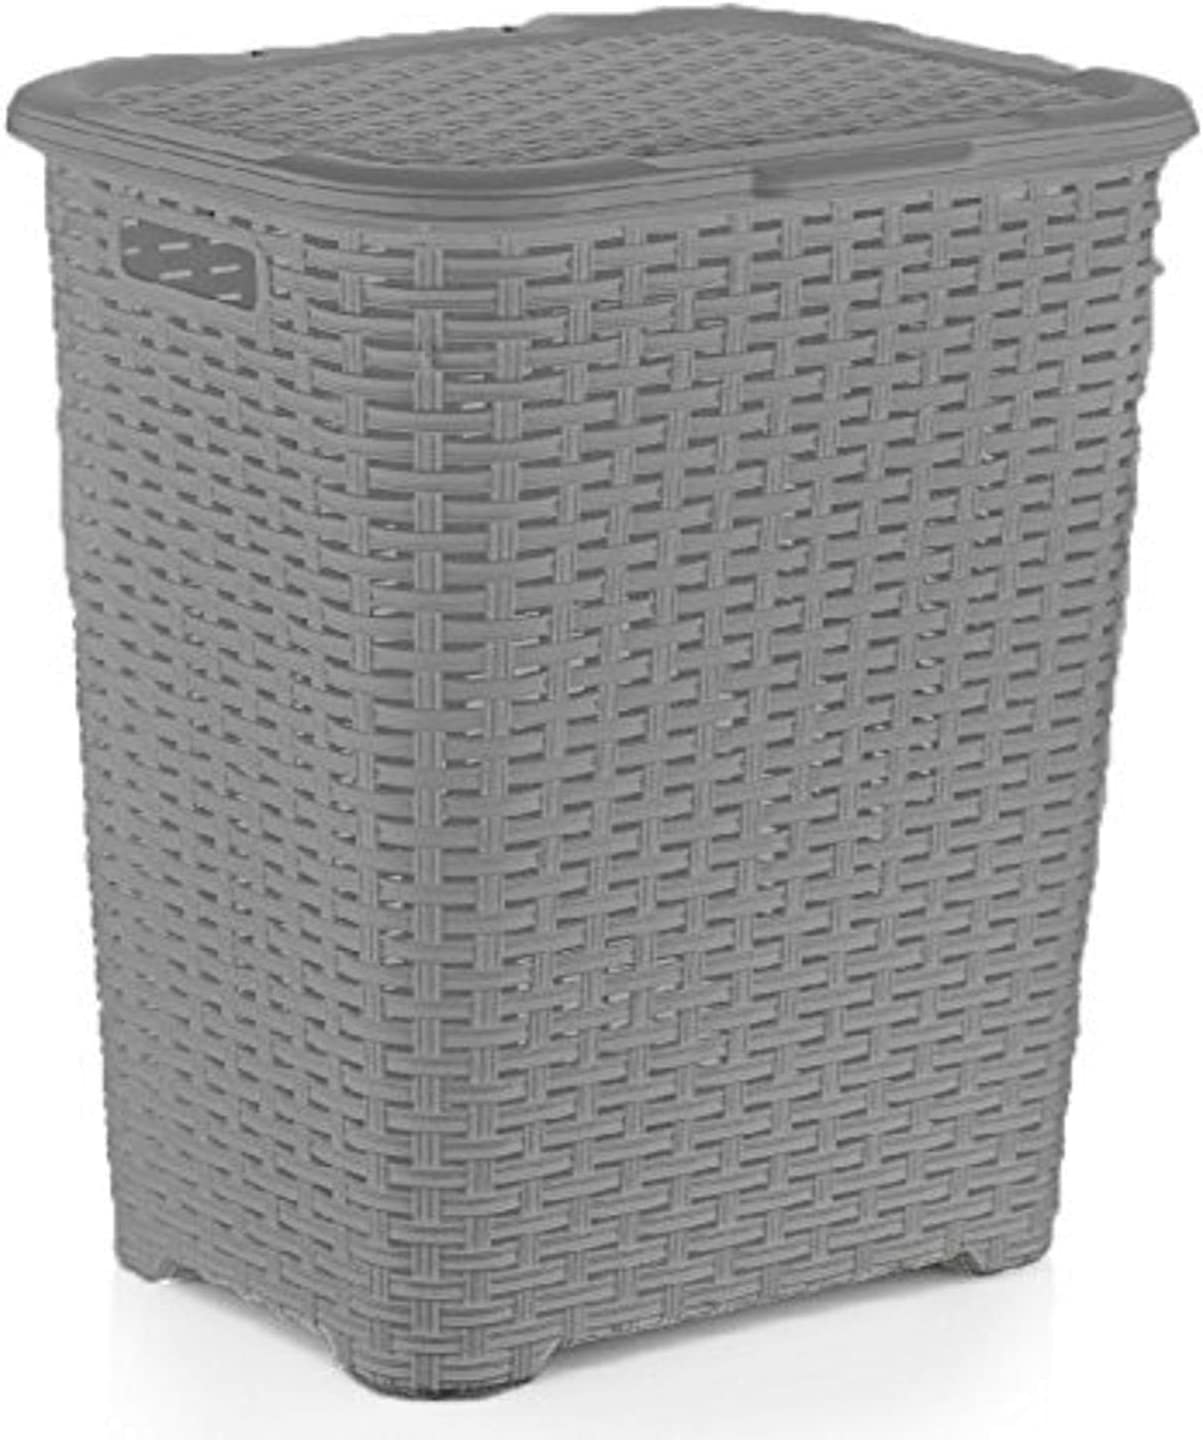 Superio Laundry Hamper Basket With Easy Open Lid 60 Liter Grey, Large Wicker Hamper, Dirty Cloths Storage With Two Cutout Handles, Laundry Room Bin